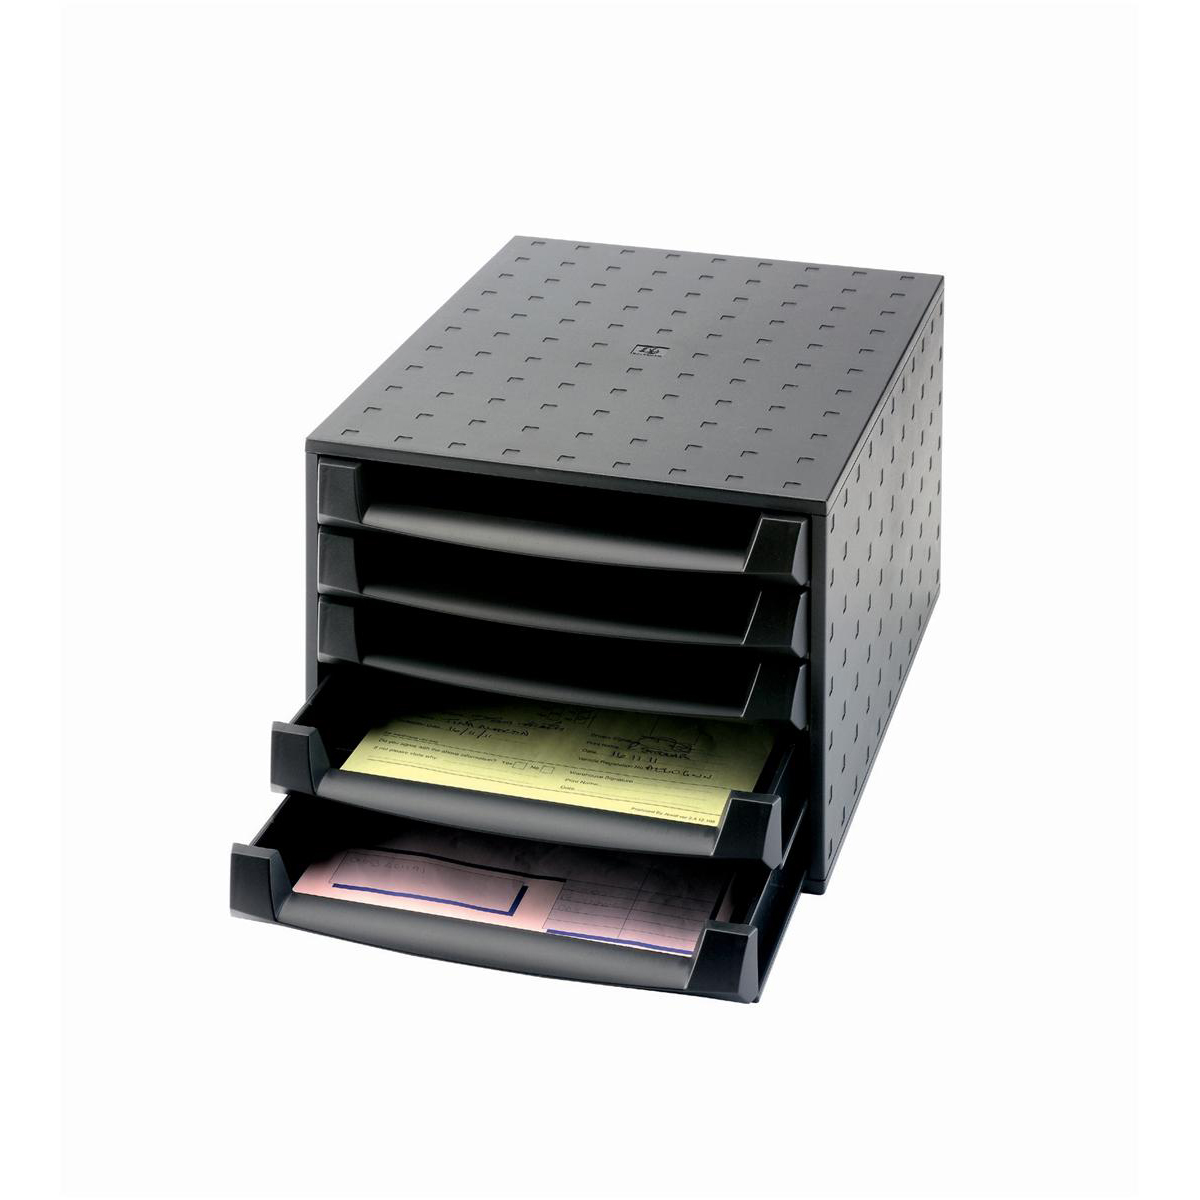 Exacompta Recycled Desktop Plastic 5 Drawer Set W347xD278xH271mm Black Ref 221014D